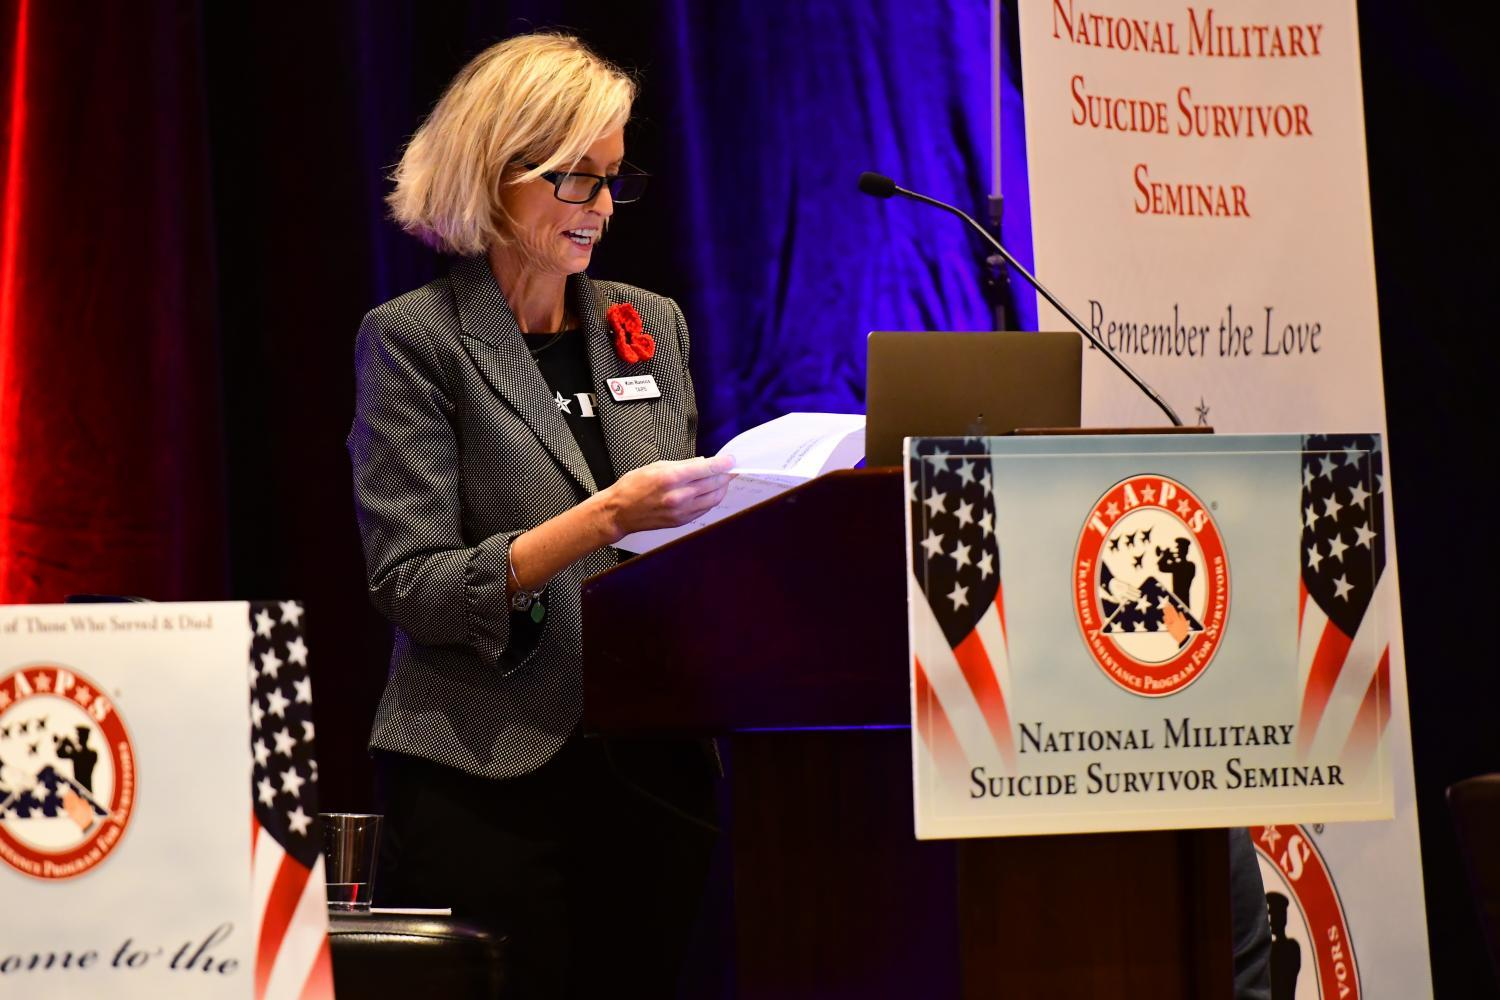 Kim Ruocco, Vice President of suicide prevention and postvention, 2019 Tragedy Assistance Program for Survivors (TAPS).